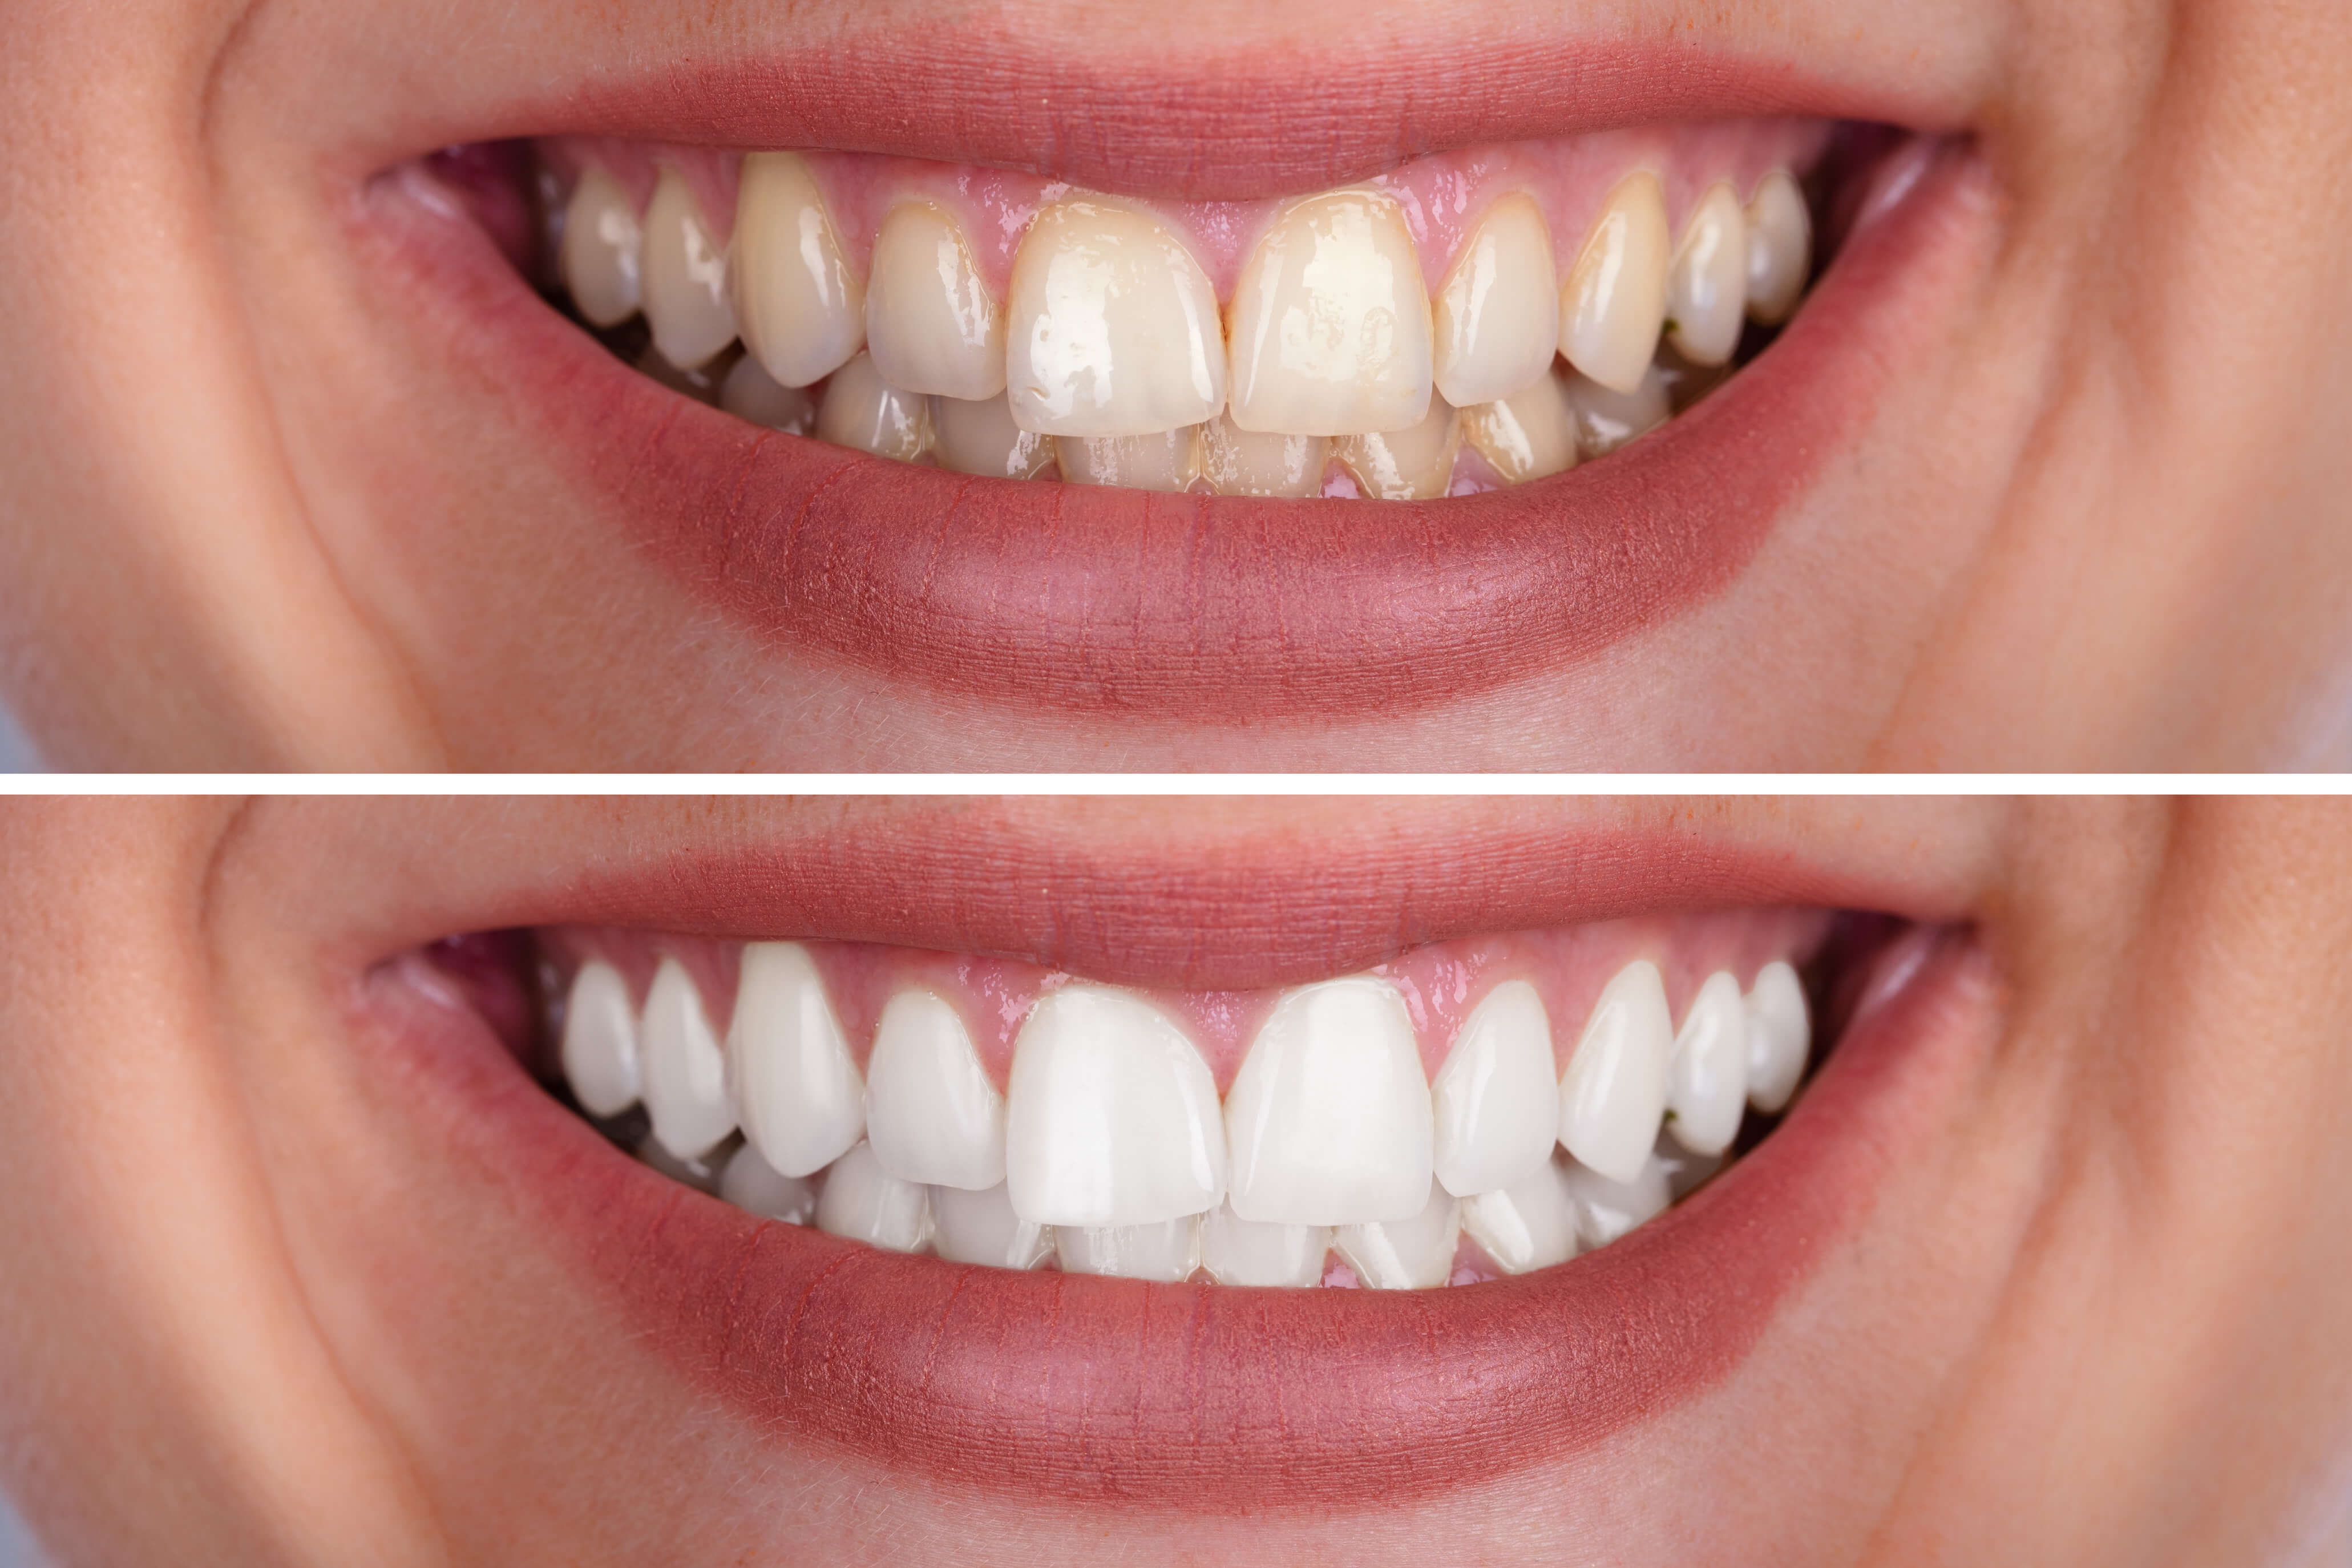 Diy Tooth Whitening Vs Professional Teeth Whitening Bonham Dental